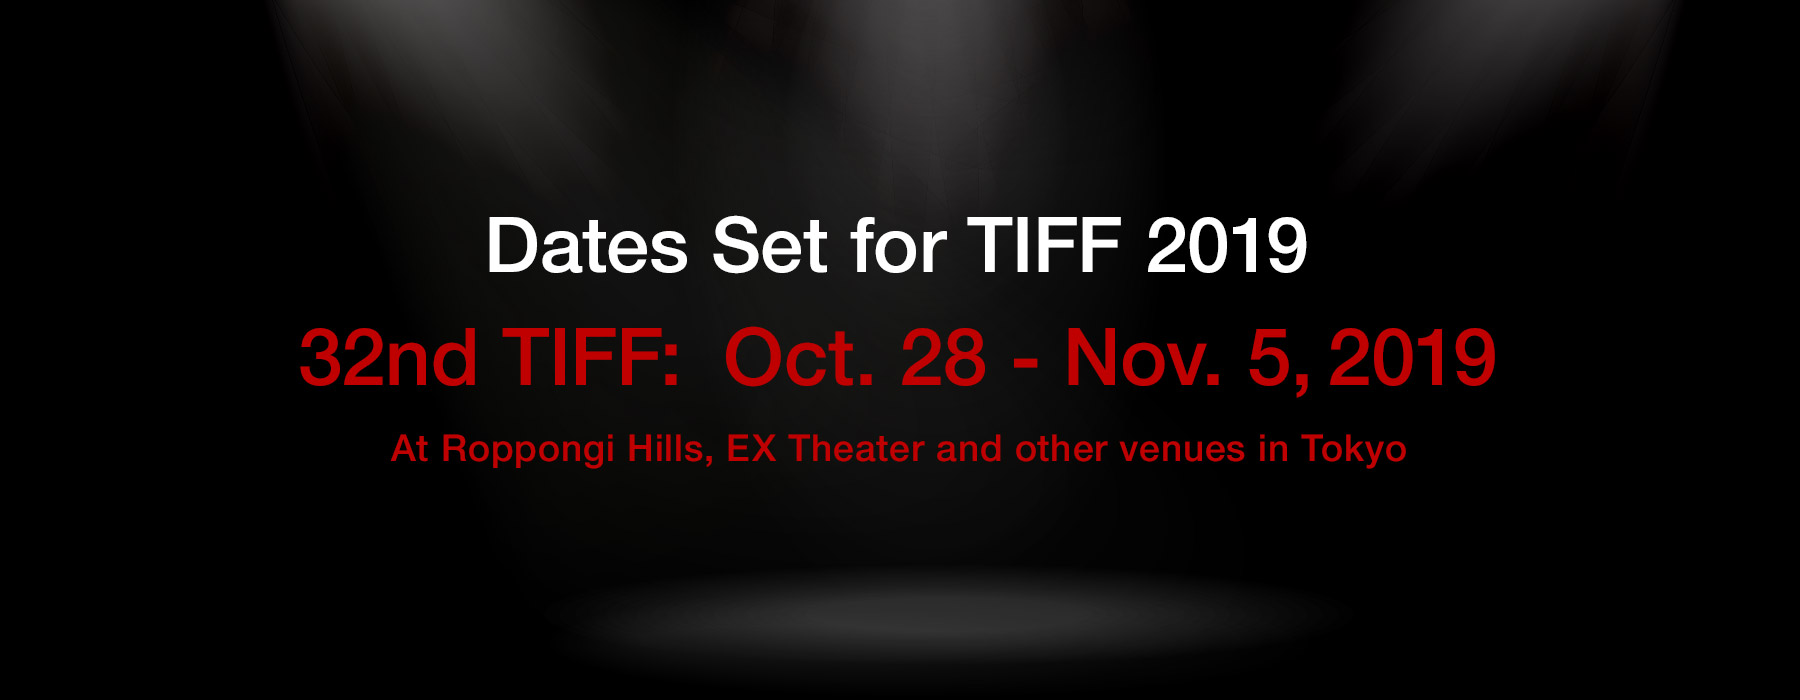 Dates Set for TIFF 2019 / 32nd TIFF: Oct.28 - Nov.5, 2019 At Roppongi Hills, EX Theater and other venues in Tokyo